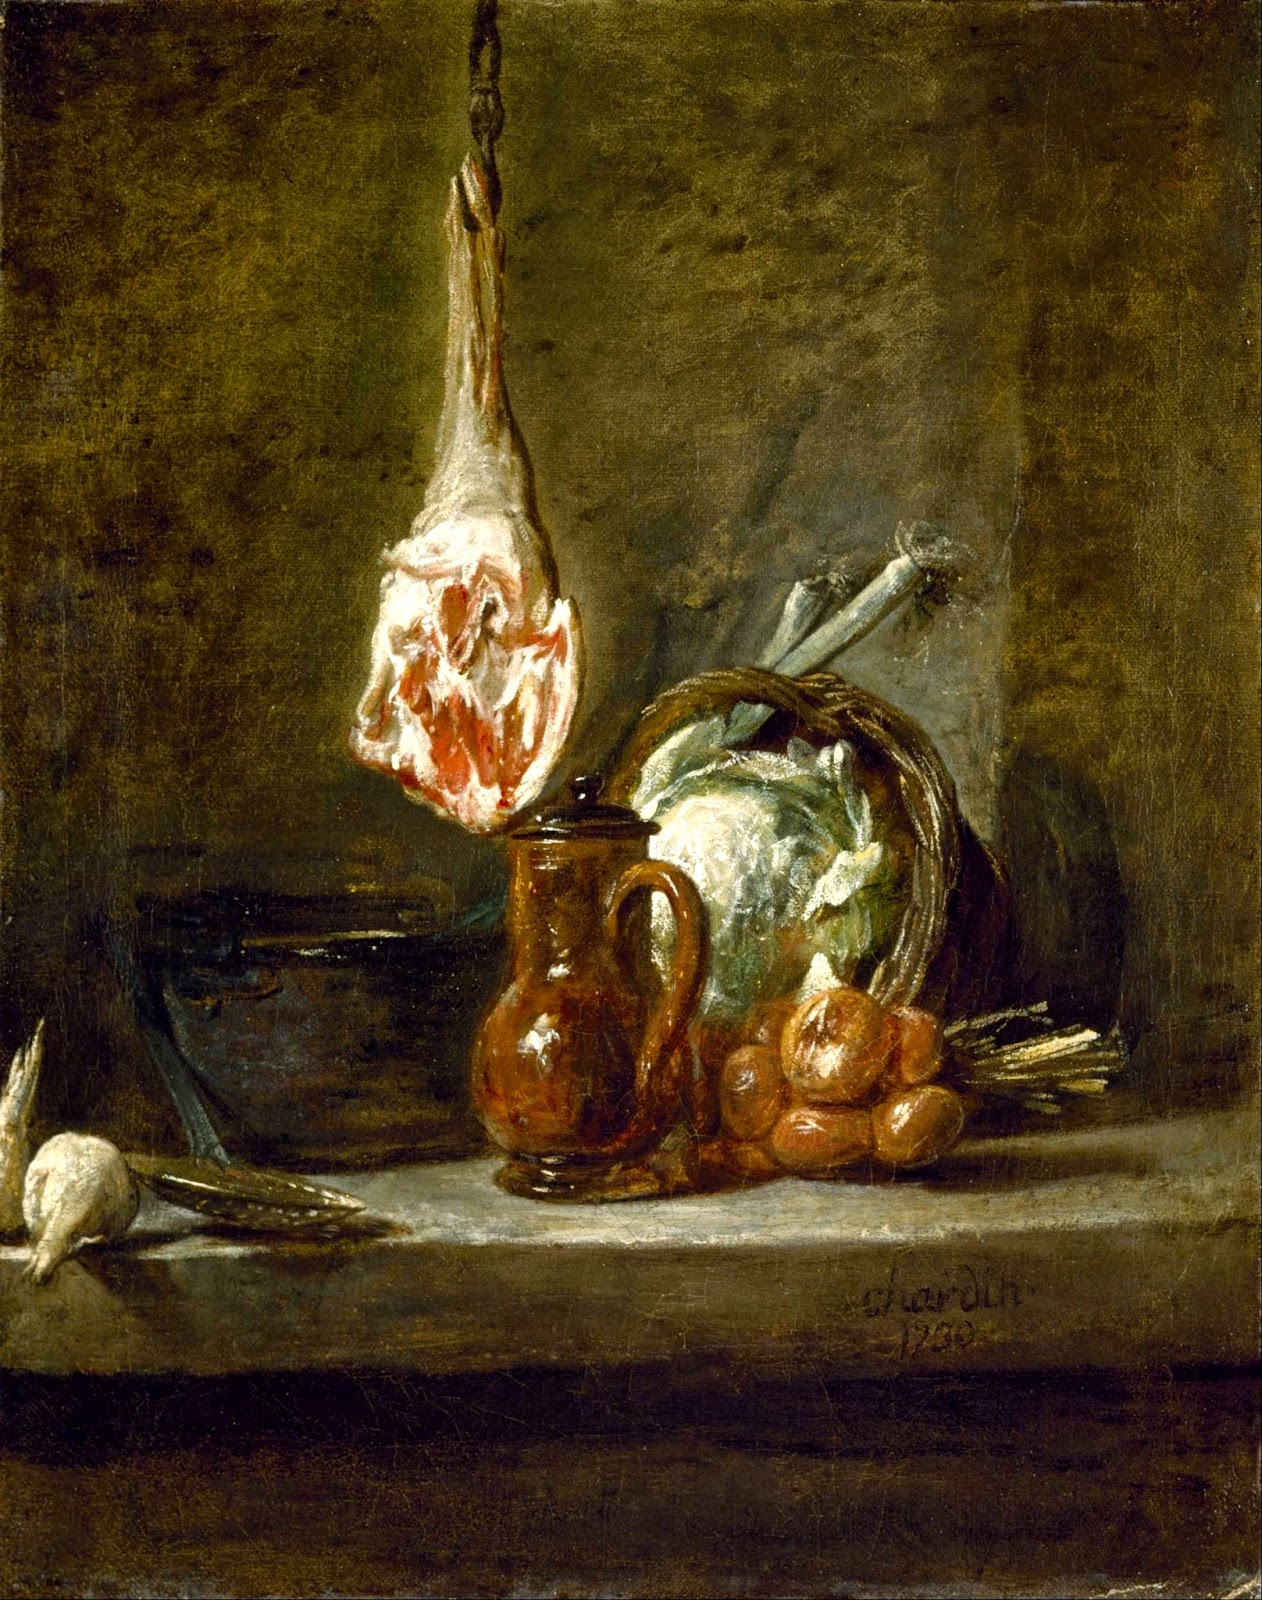 Still Life with Leg of Lamb Painting by Jean-Baptiste Siméon Chardin